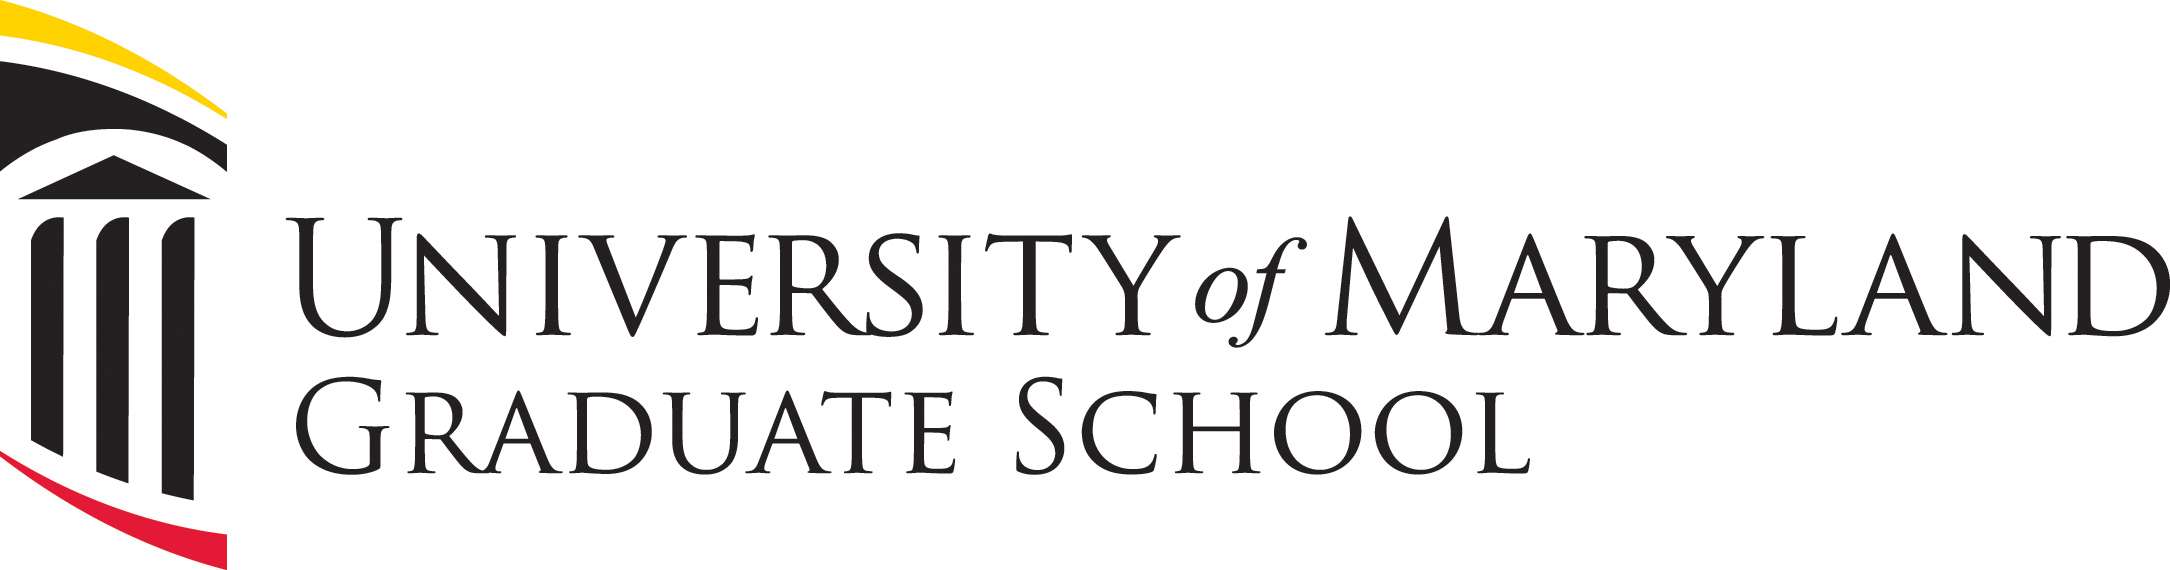 University of Maryland Graduate School